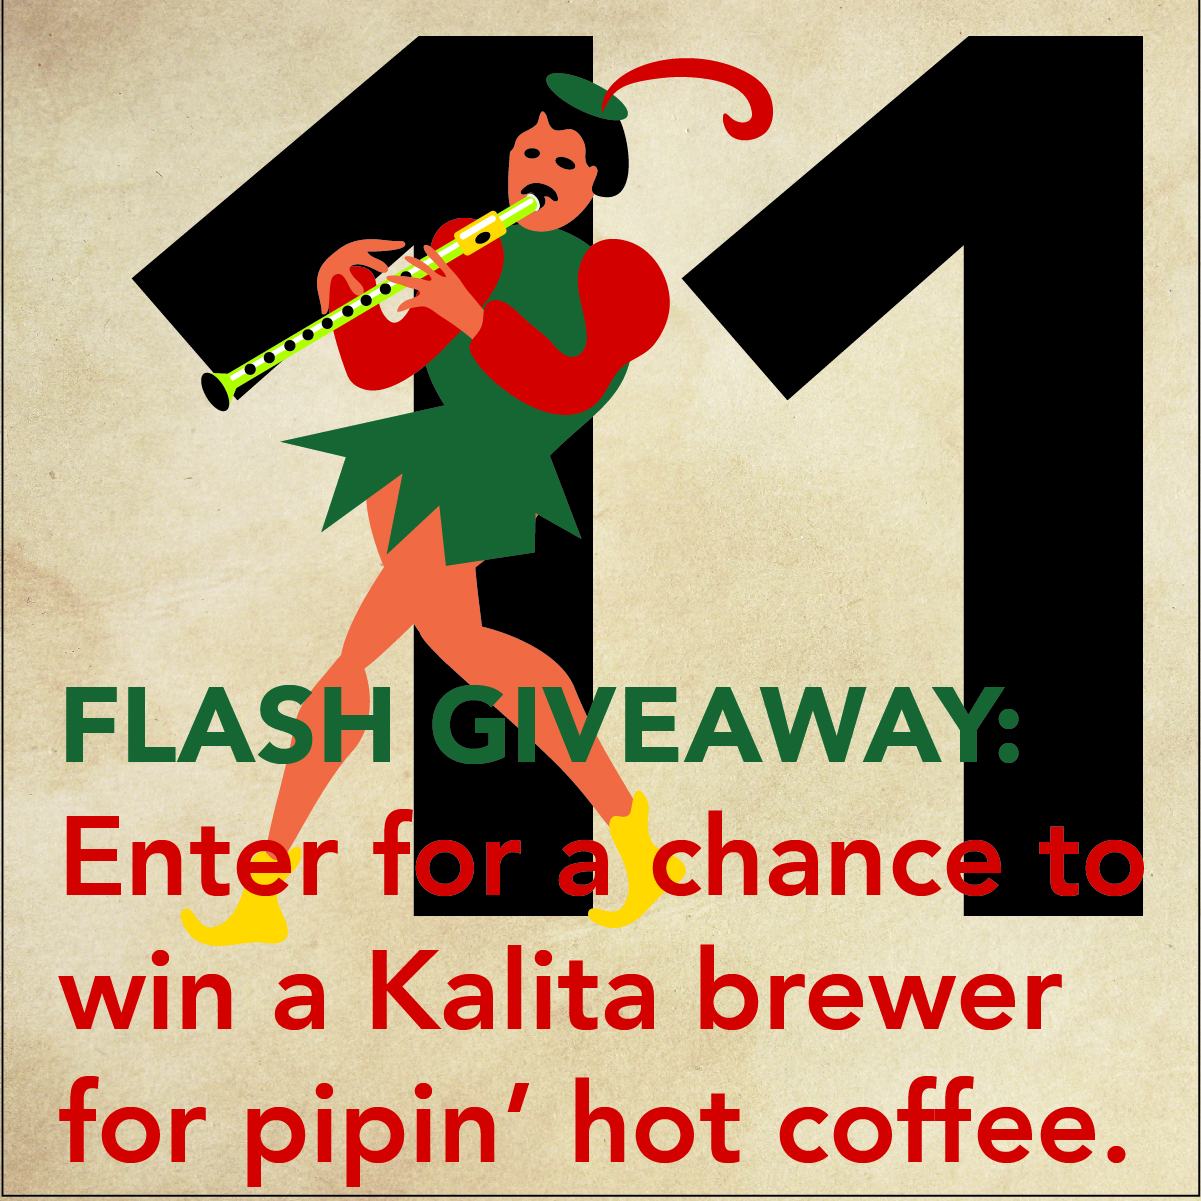 DEC. 14  - 11 PIPERS PIPING  24 hour flash giveaway - enter online or on facebook to win a Kalita coffee brewer to brew a piping hot cup of coffee.